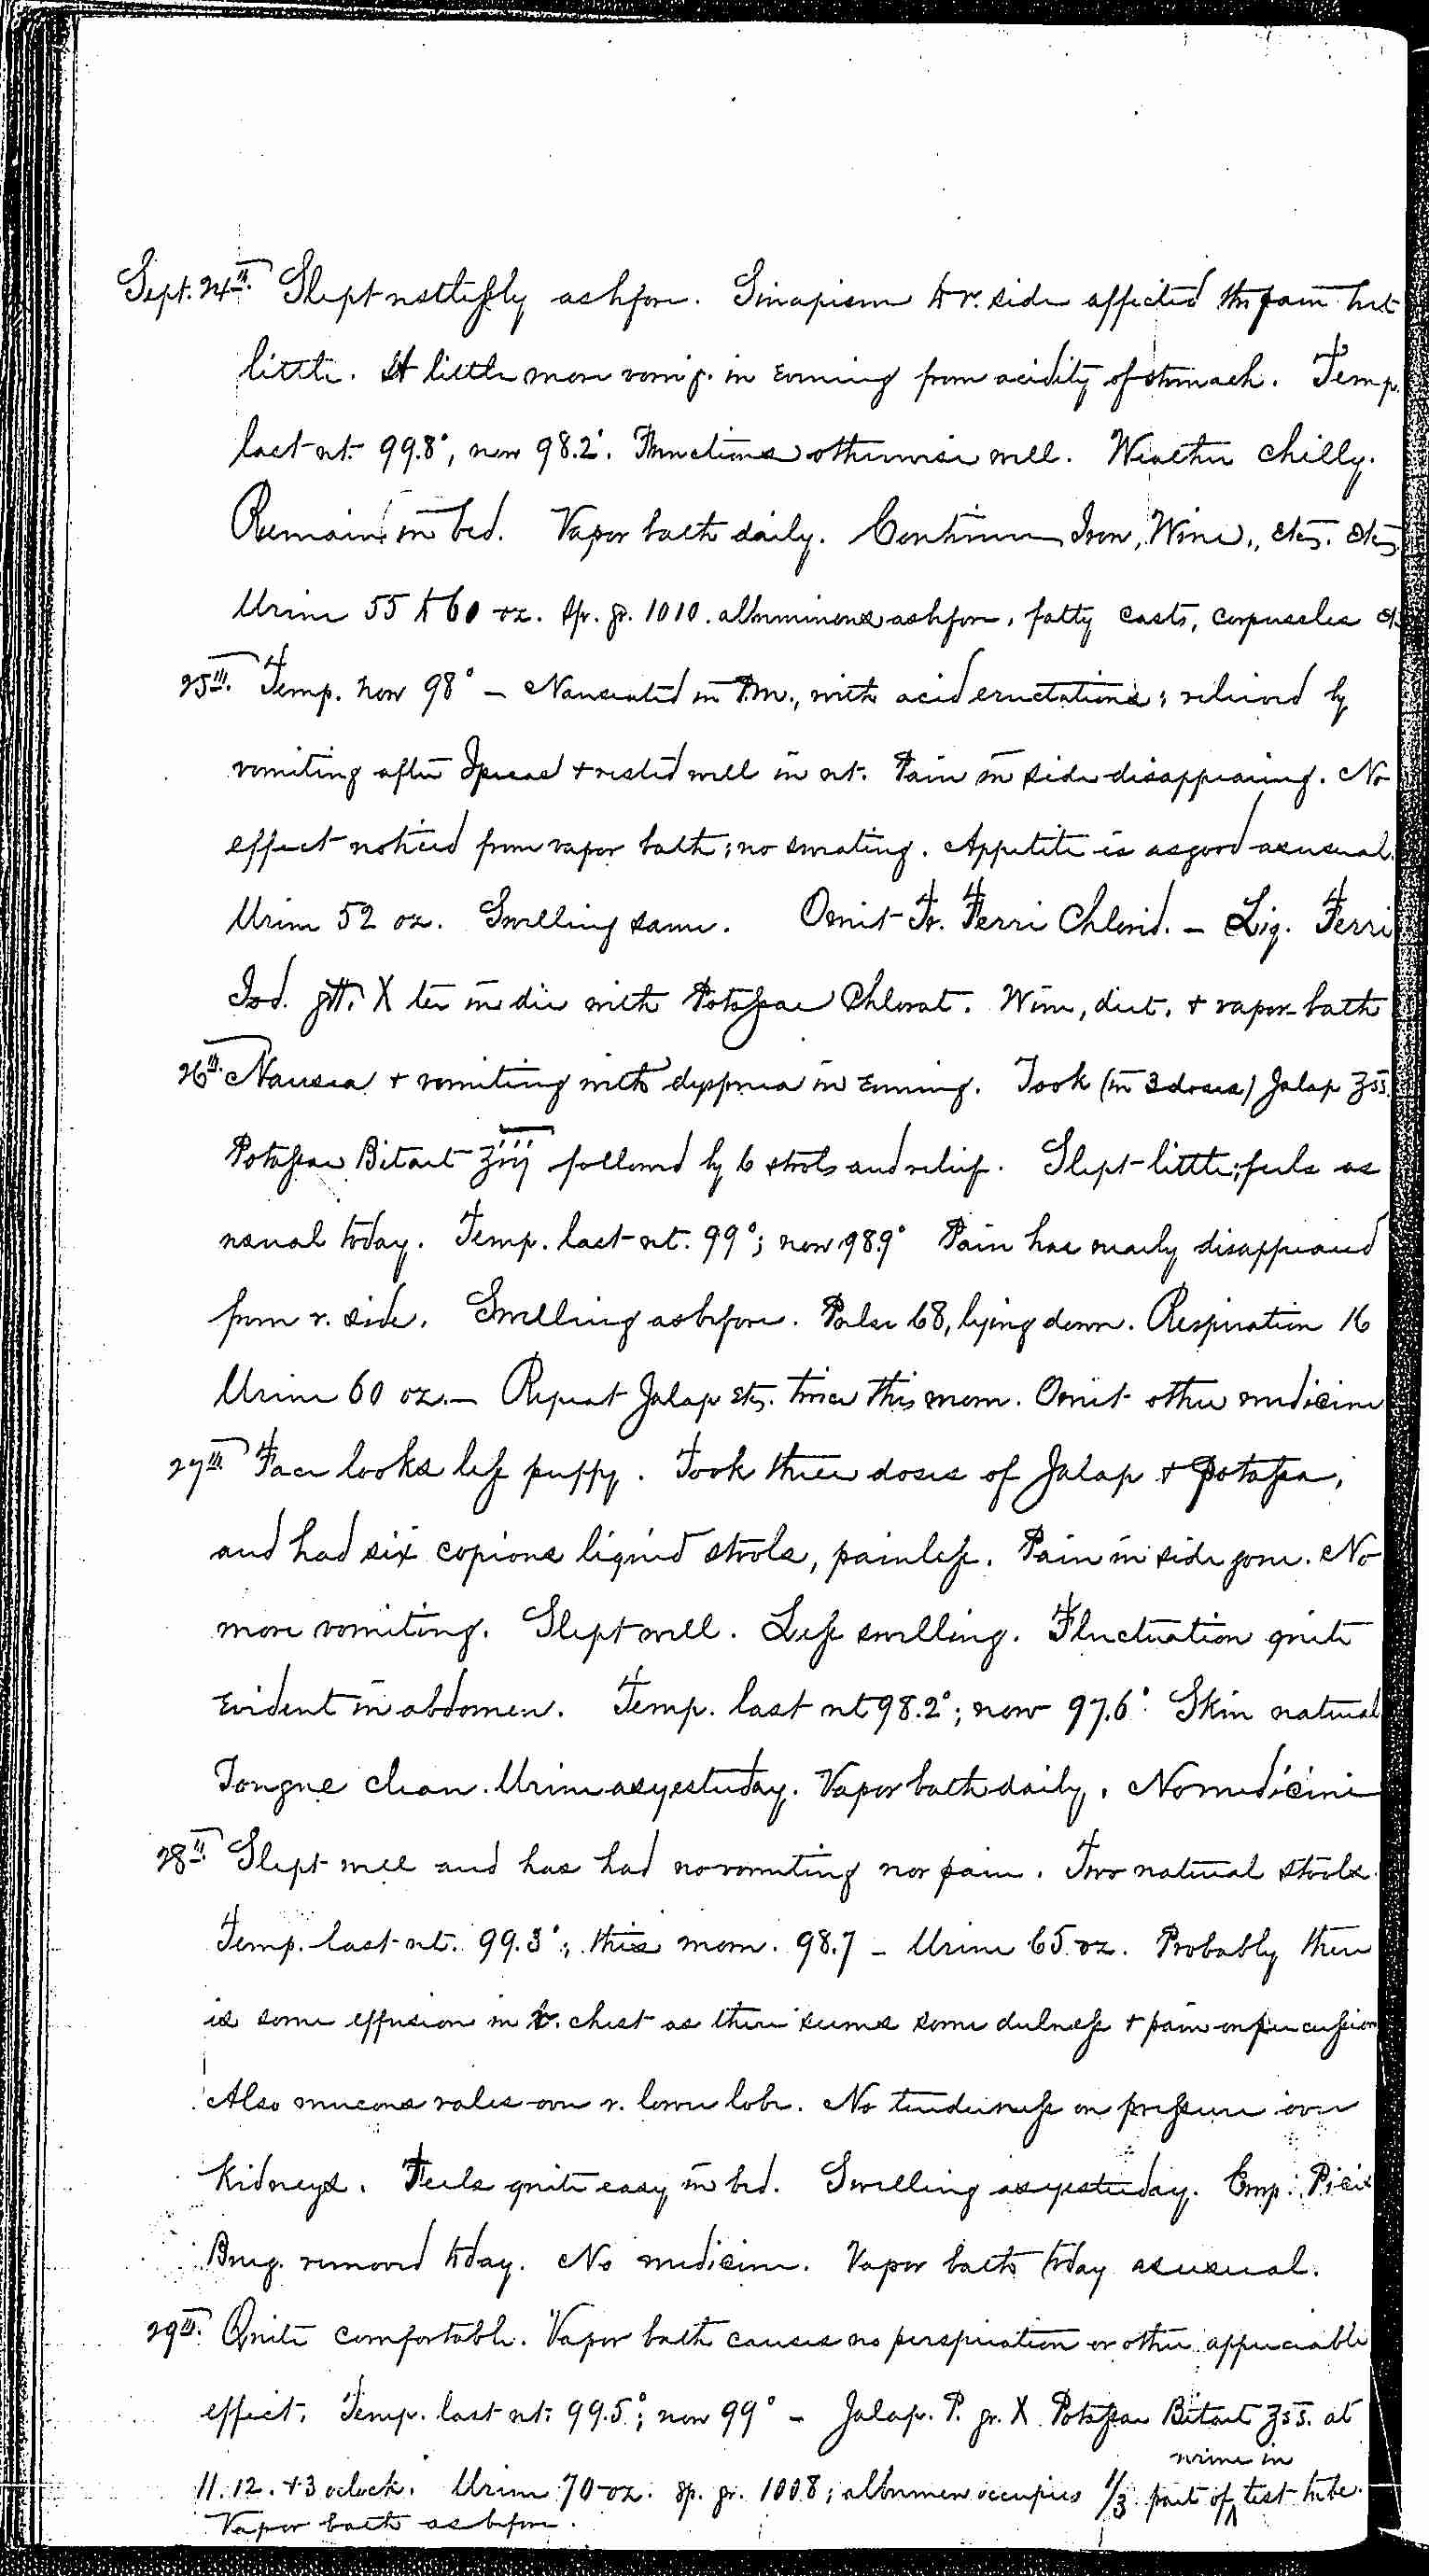 Entry for Bernard Coyne (page 4 of 13) in the log Hospital Tickets and Case Papers - Naval Hospital - Washington, D.C. - 1868-69